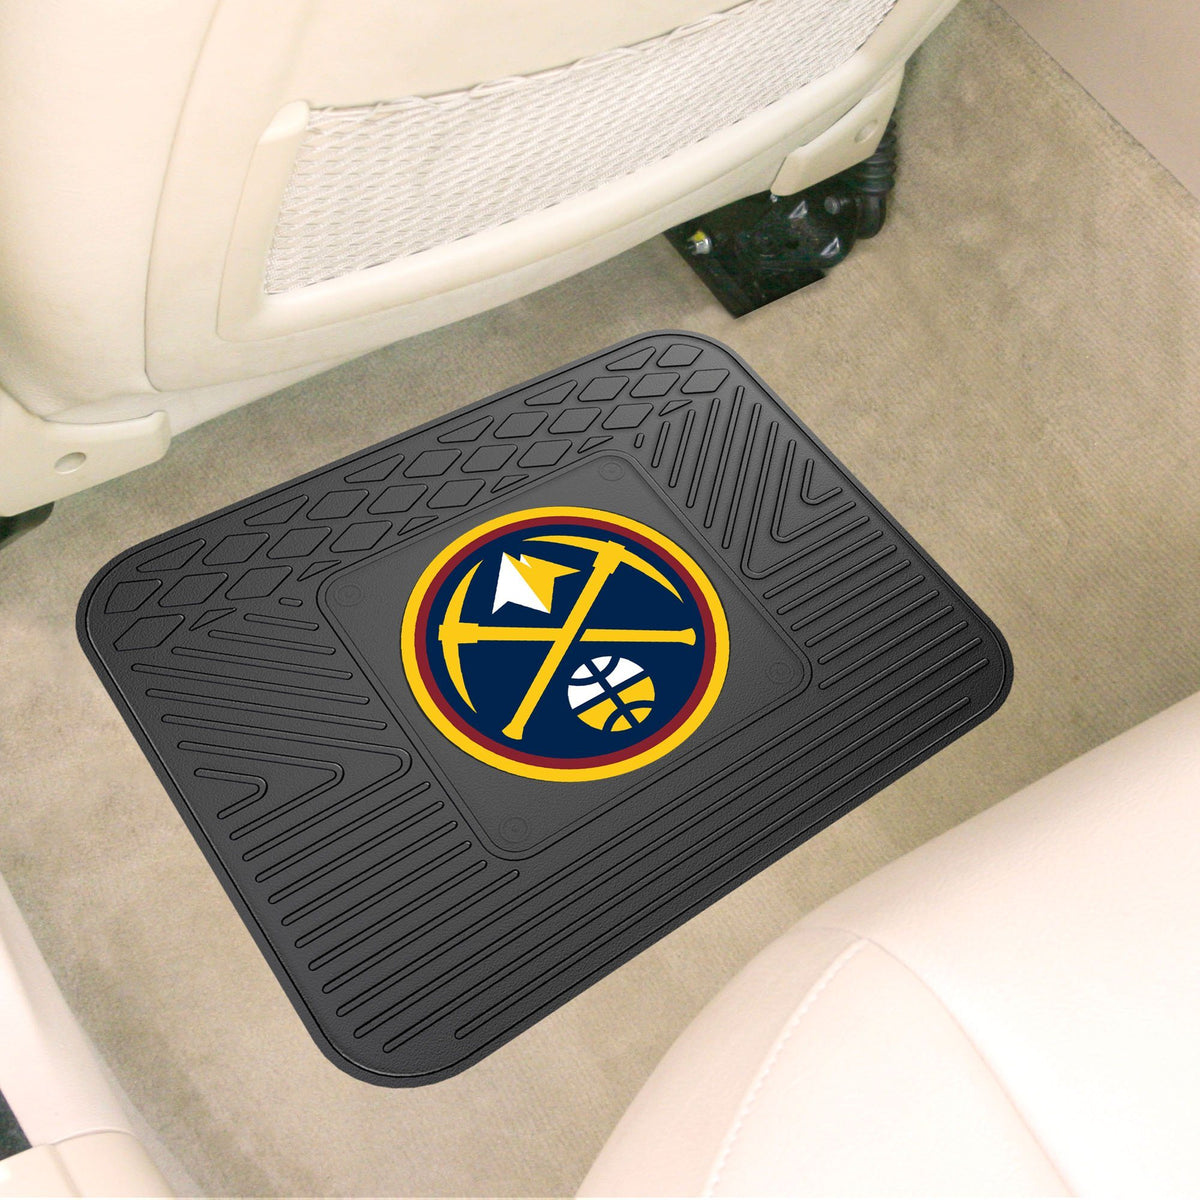 NBA - Utility Mat NBA Mats, Rear Car Mats, Utility Mat, NBA, Auto Fan Mats Denver Nuggets